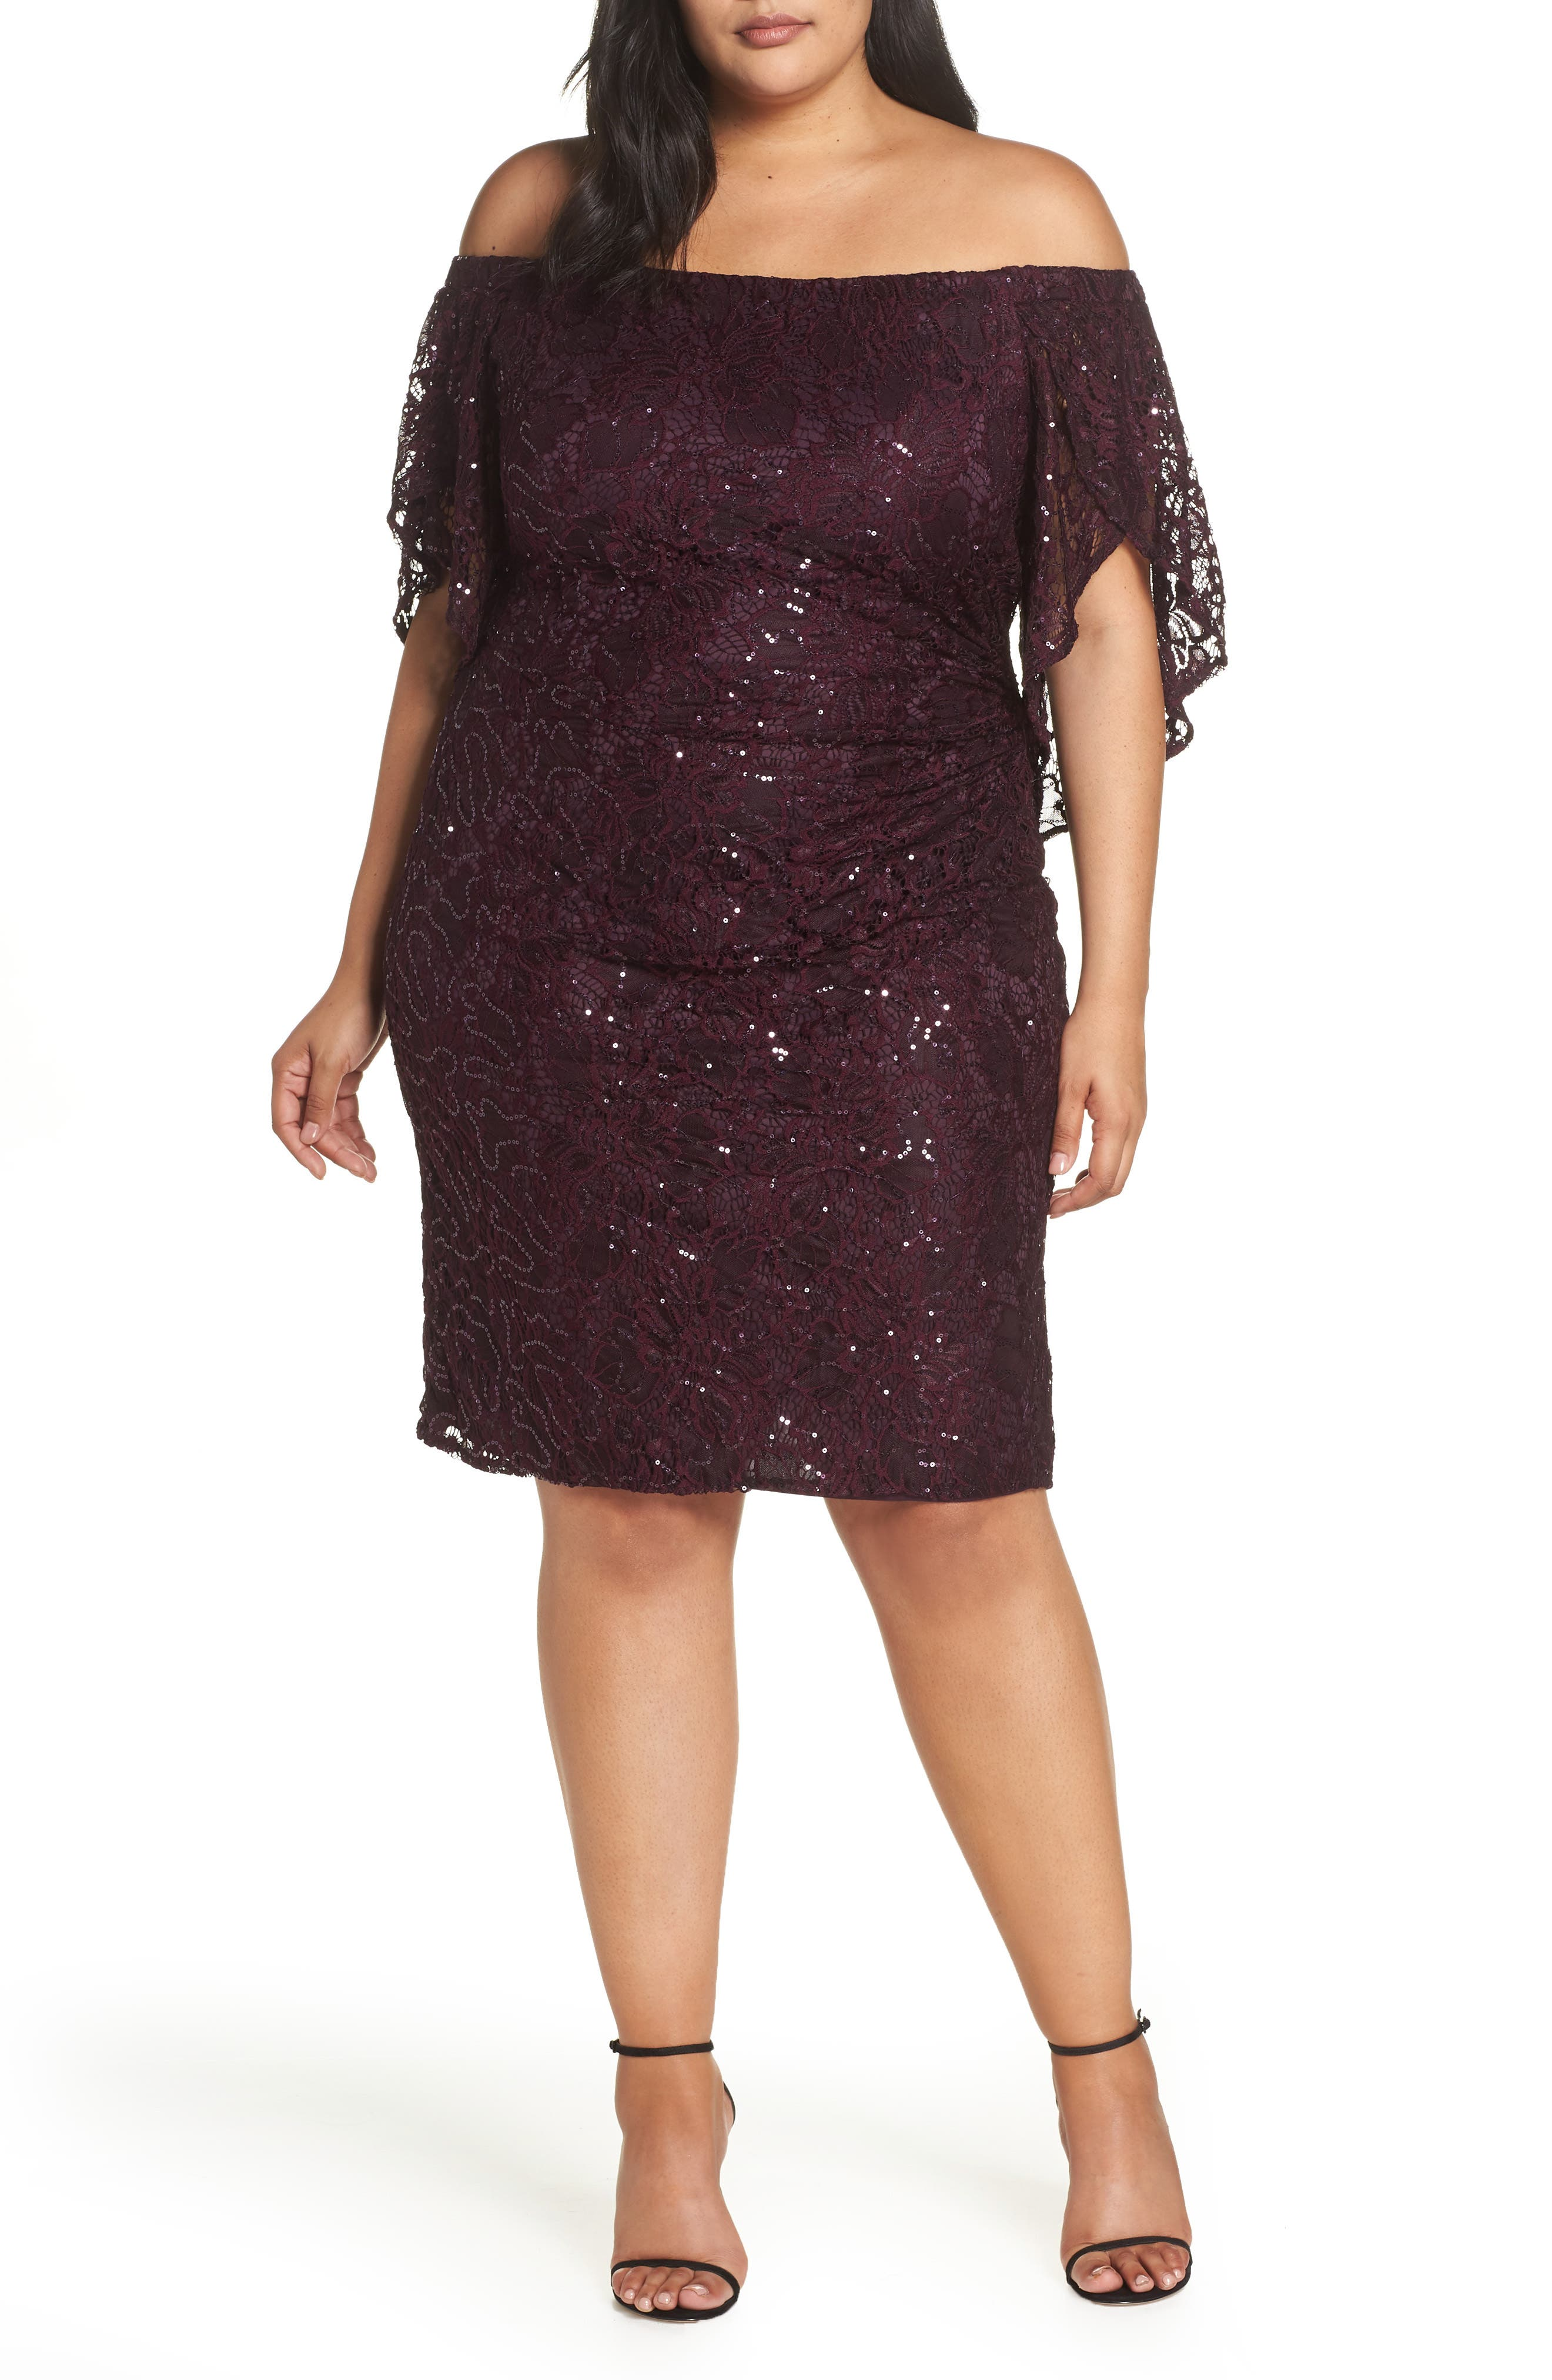 70s Prom, Formal, Evening, Party Dresses Plus Size Womens Morgan  Co. Sequin Off The Shoulder Cocktail Dress $139.00 AT vintagedancer.com